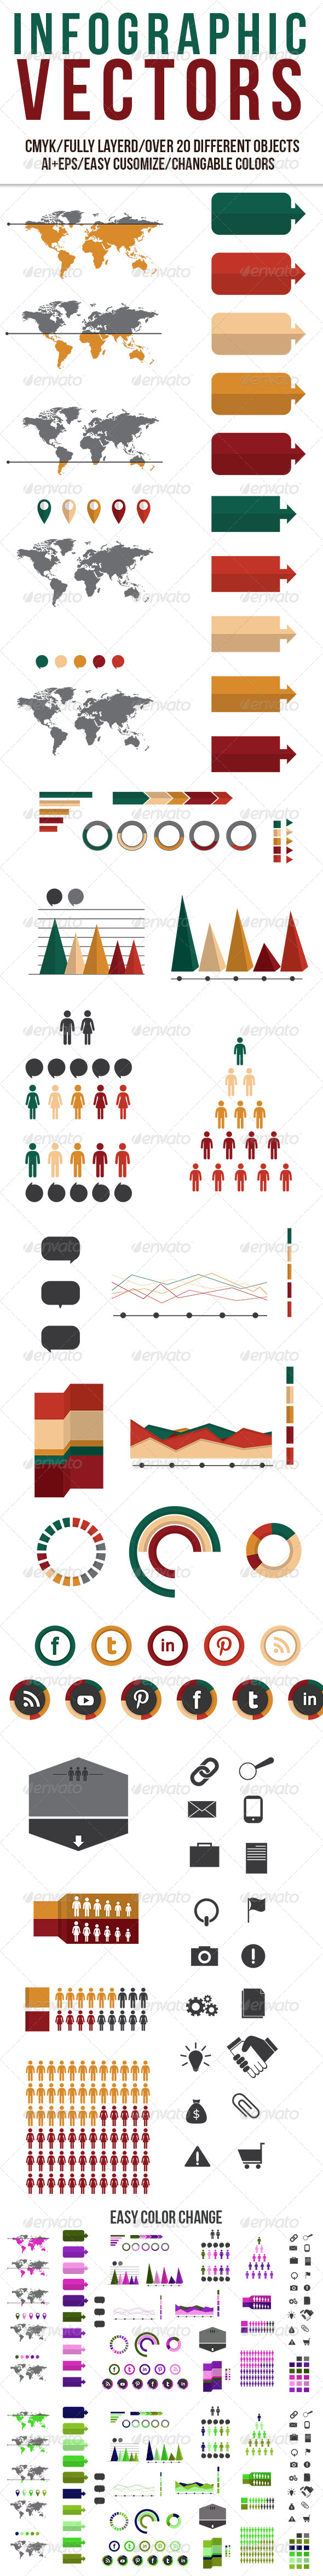 GraphicRiver Infographic Vector 6331331